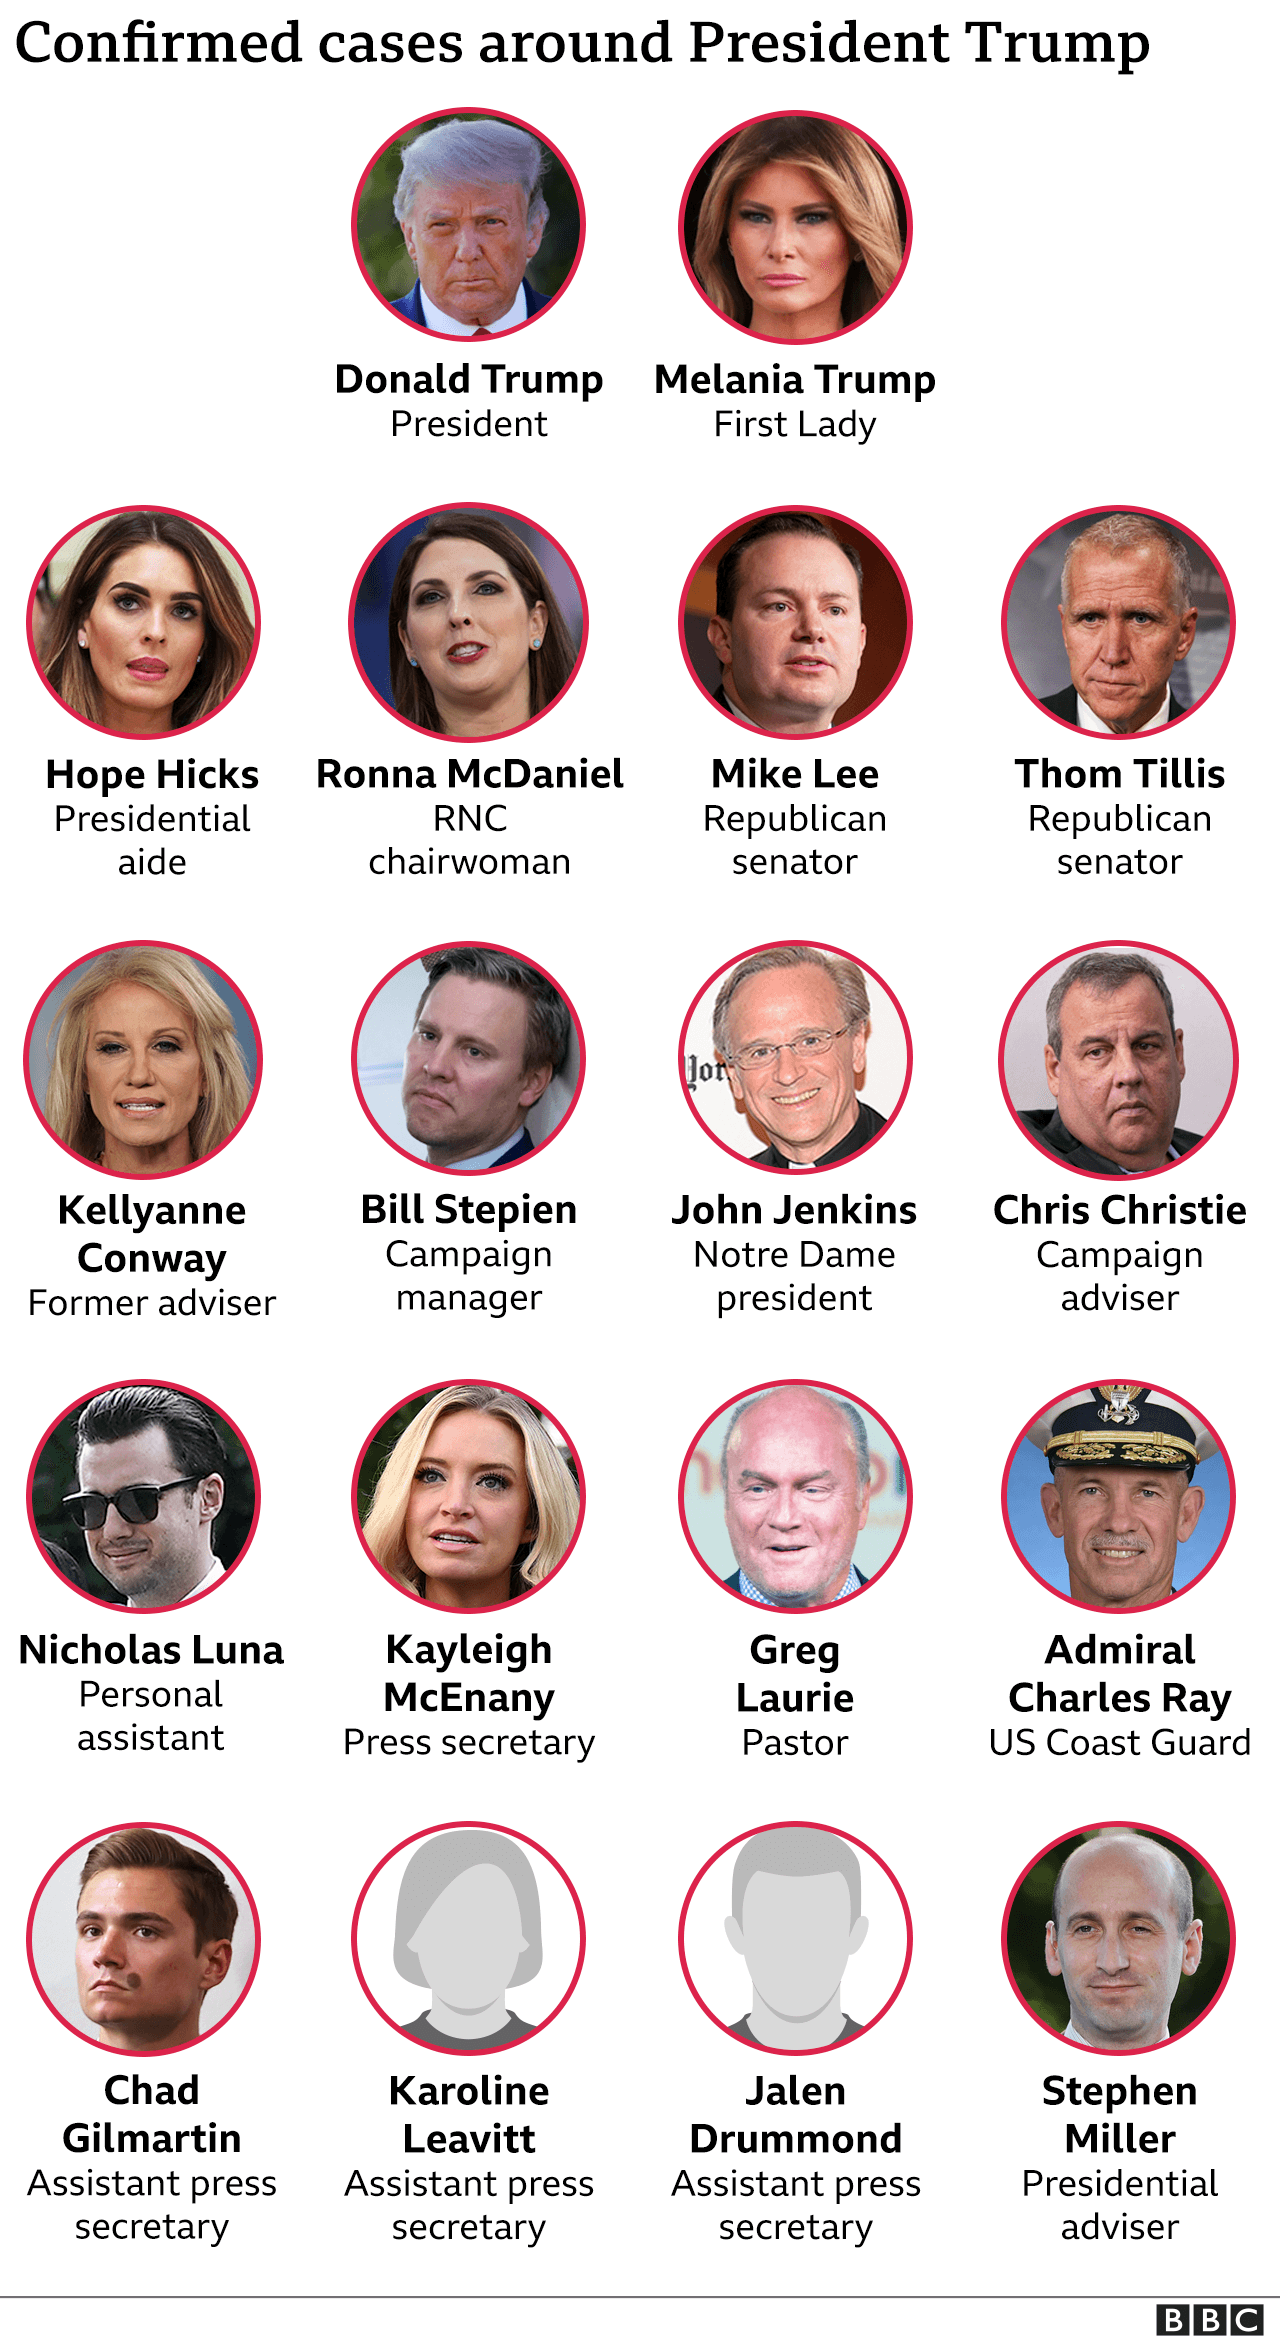 Graphic showing people who have tested positive for coronavirus after being in close proximity to President Trump